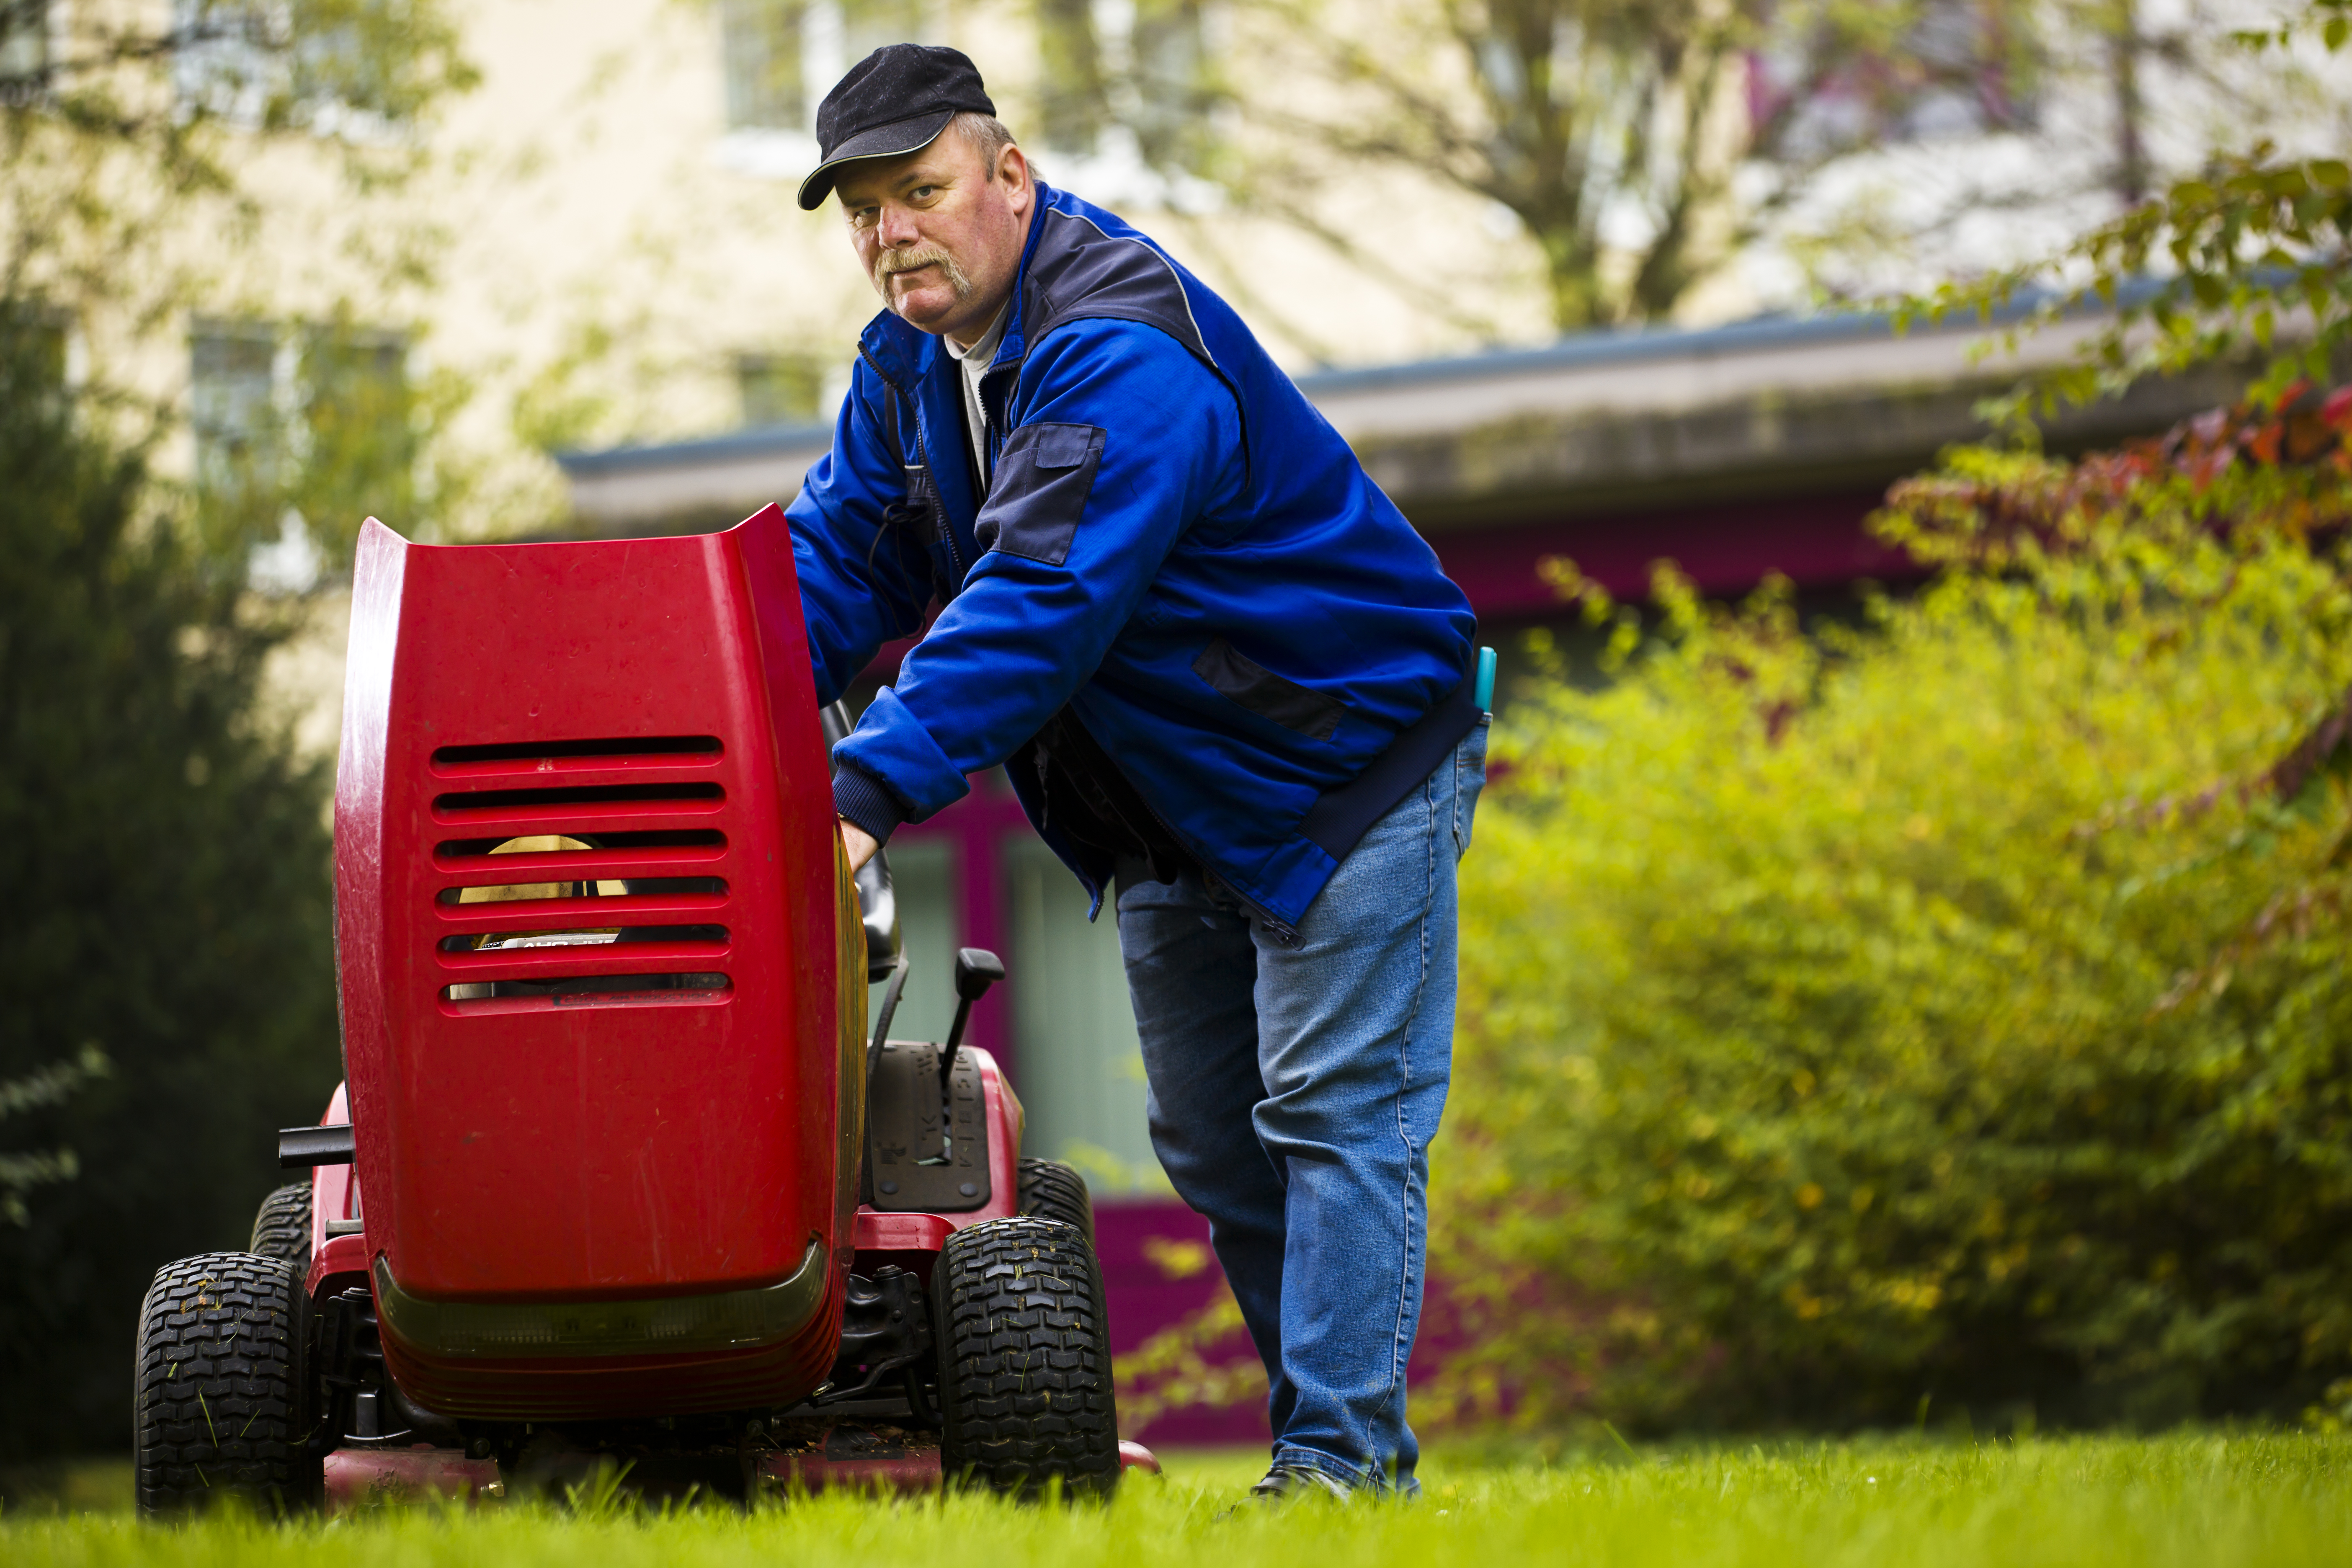 Repairing a Lawn Tractor